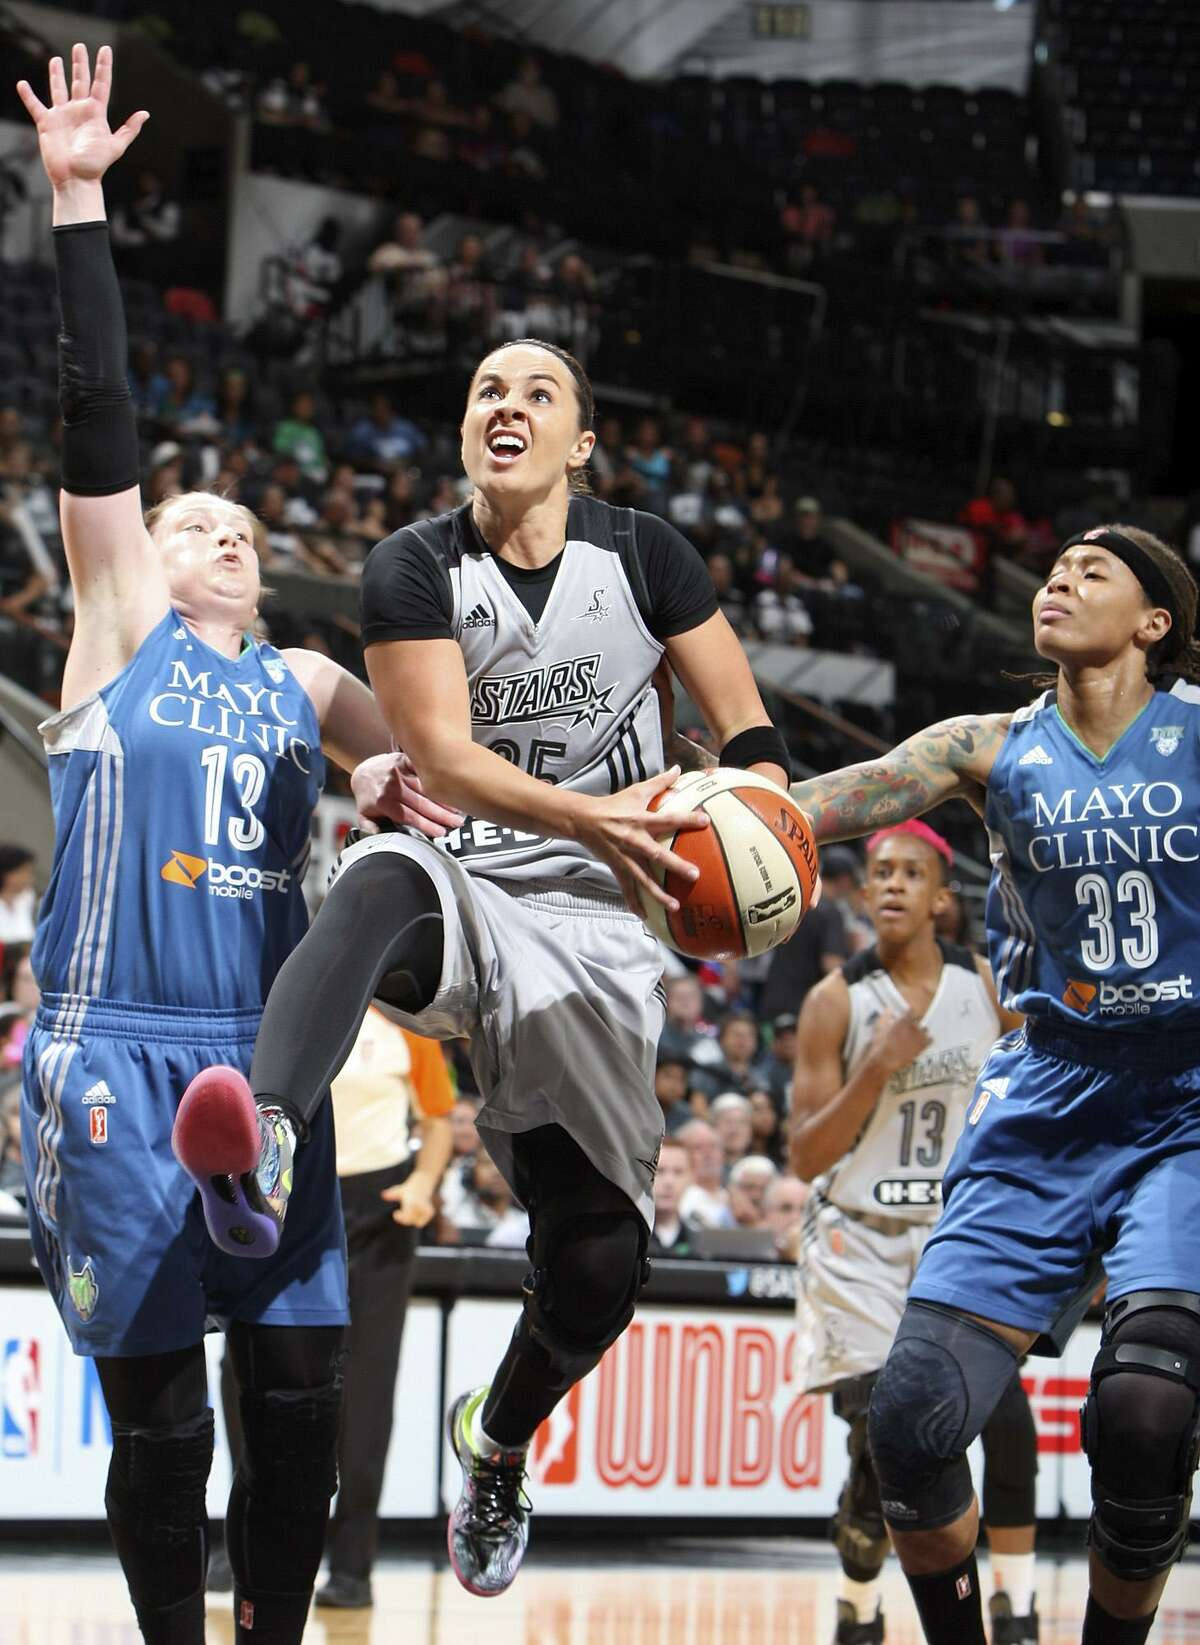 San Antonio Stars' Becky Hammon drives to the basket between Minnesota Lynx's Lindsay Whalen (left) and Seimone Augustus during first half action Saturday Aug. 23, 2014 at the AT&T Center.